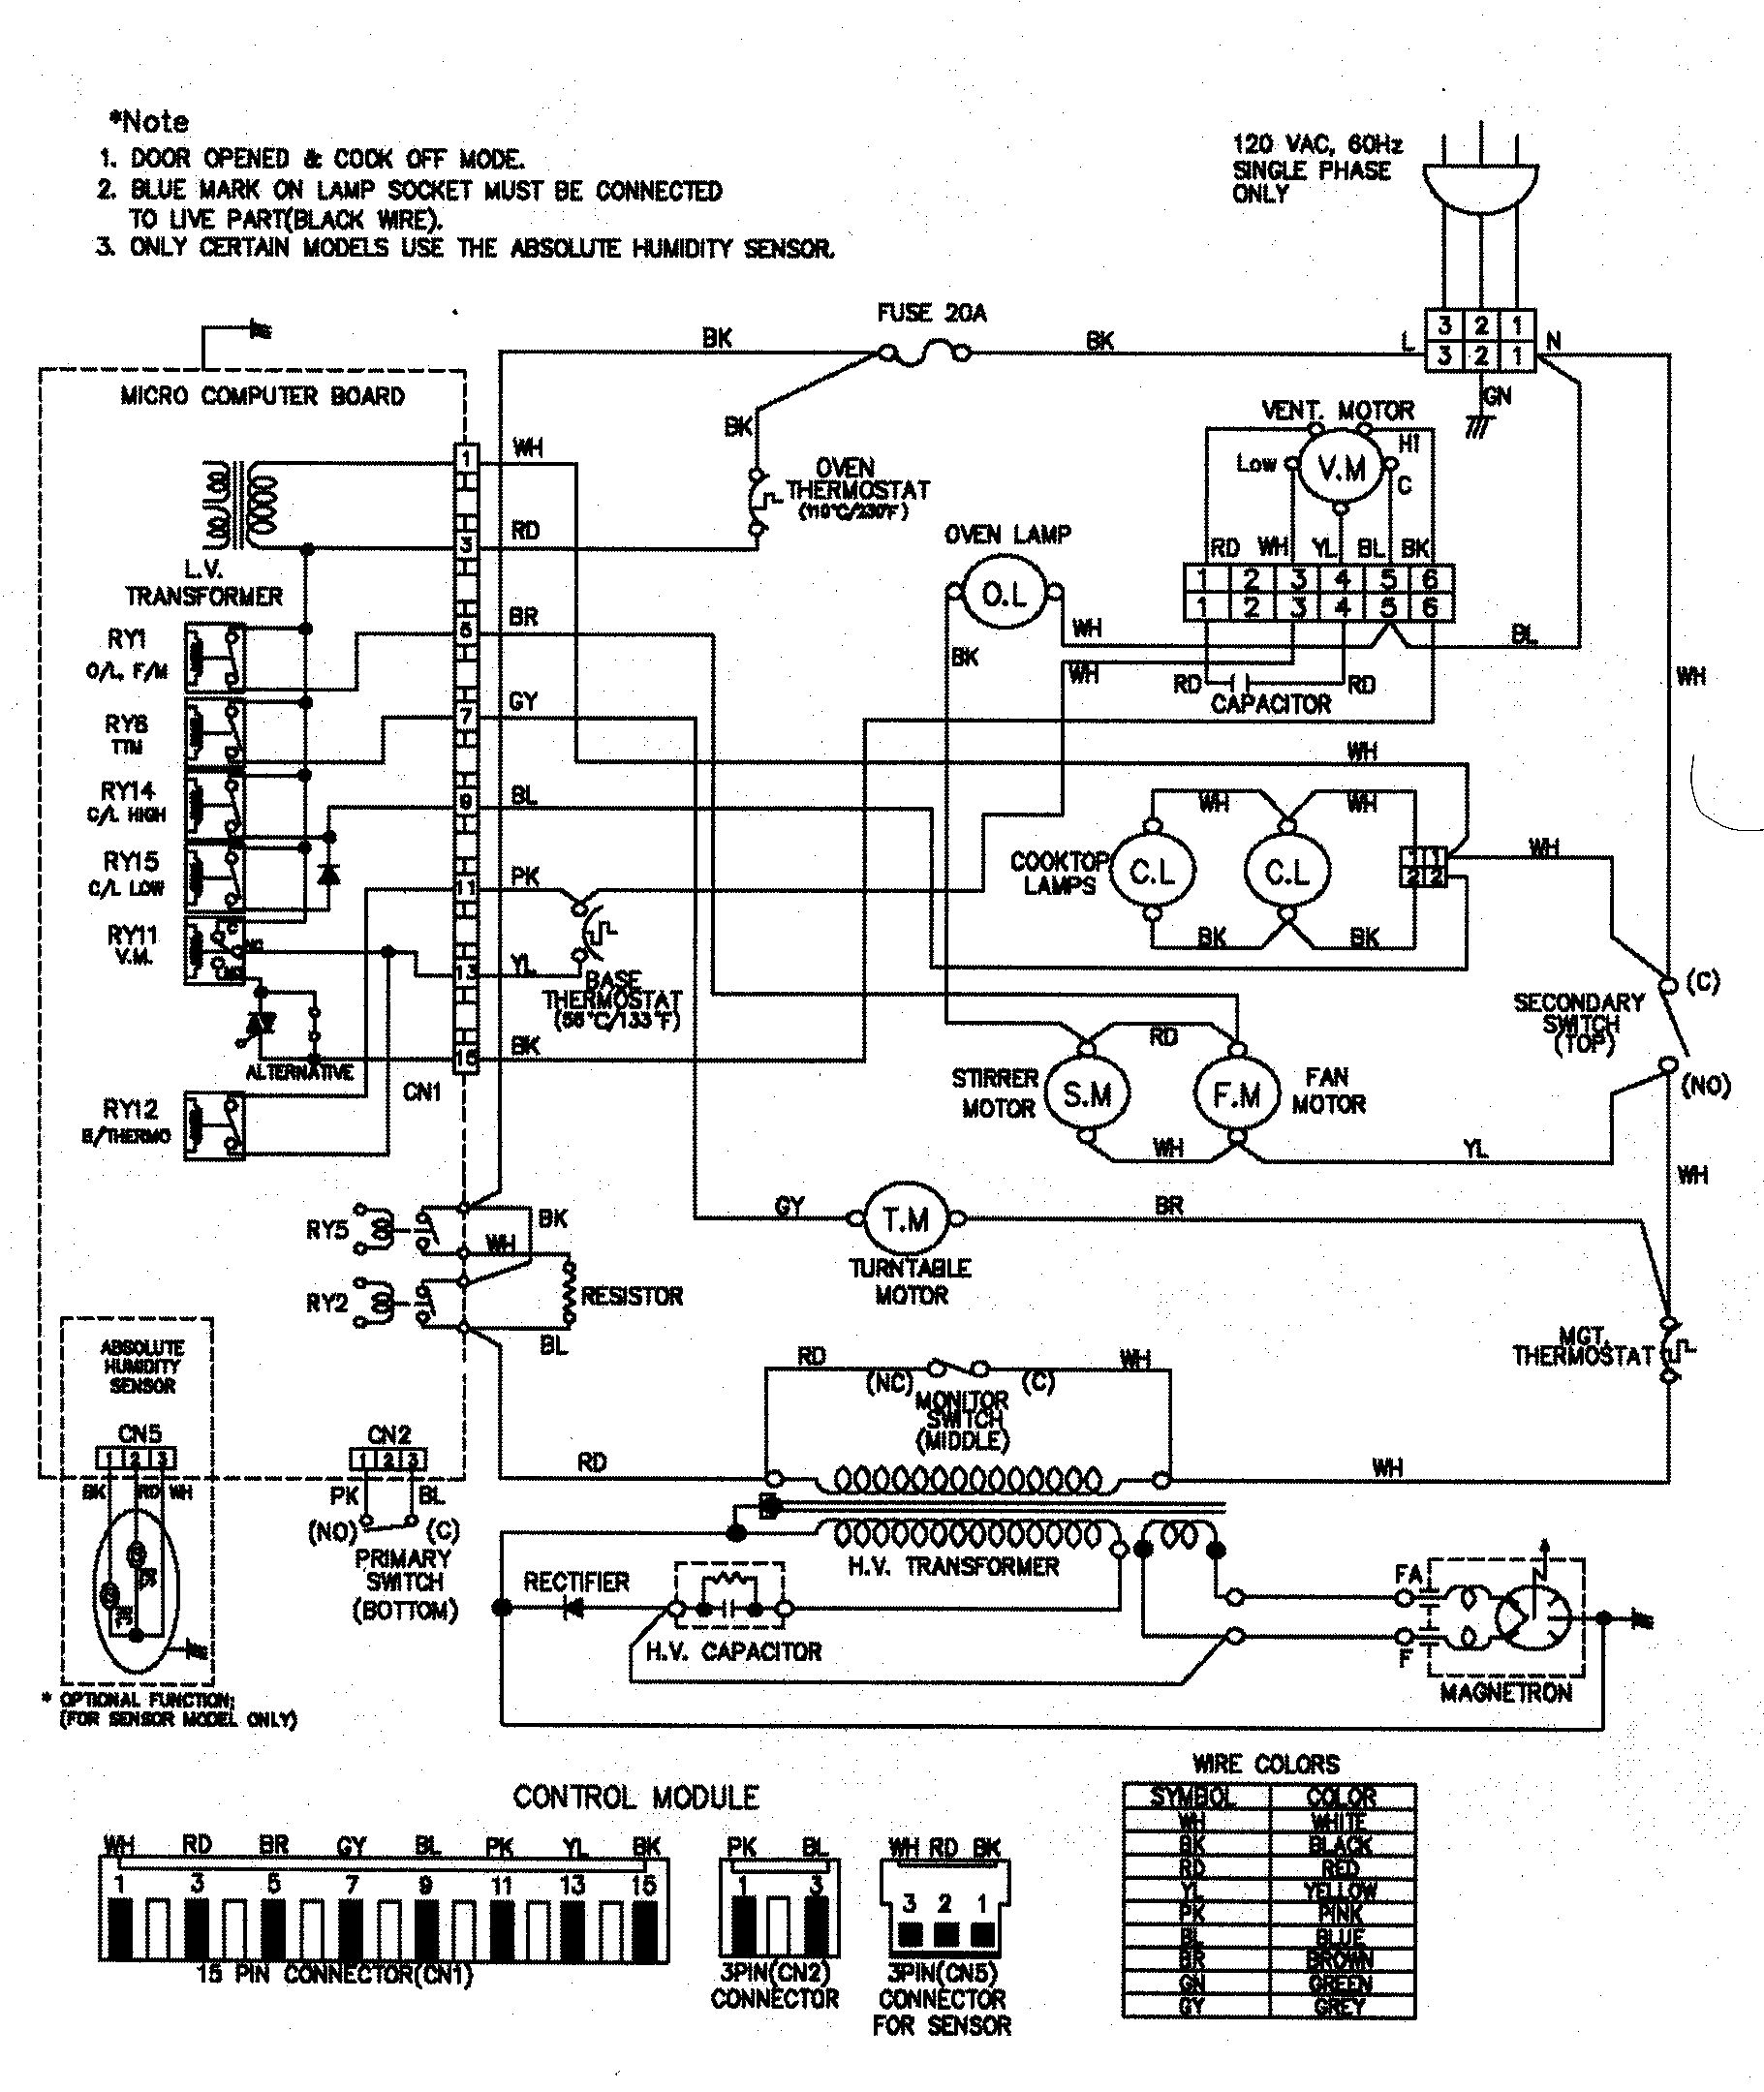 [DIAGRAM] Wiring Diagram Of A Microwave Oven FULL Version